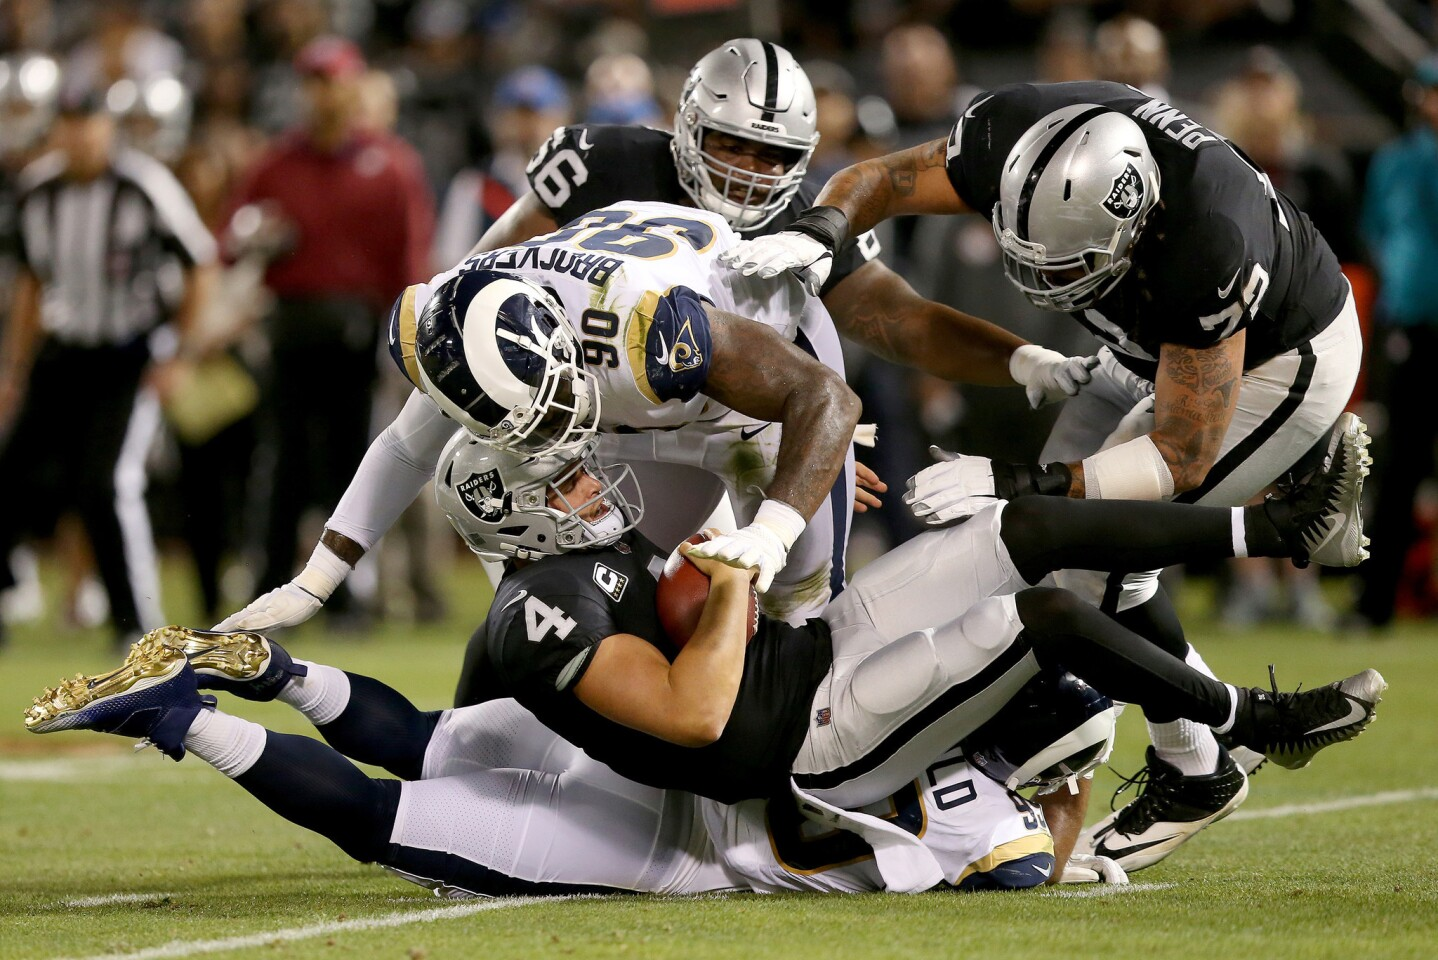 Oakland Raiders quarterback Derek Carr (4) is sacked by Los Angeles Rams defensive tackle Michael Brockers (90) and a defensive penalty is called in the first quarter of their NFL game at the Coliseum in Oakland, Calif., on Monday, Sept. 10, 2018. (Jane Tyska/Bay Area News Group/TNS) ** OUTS - ELSENT, FPG, TCN - OUTS **